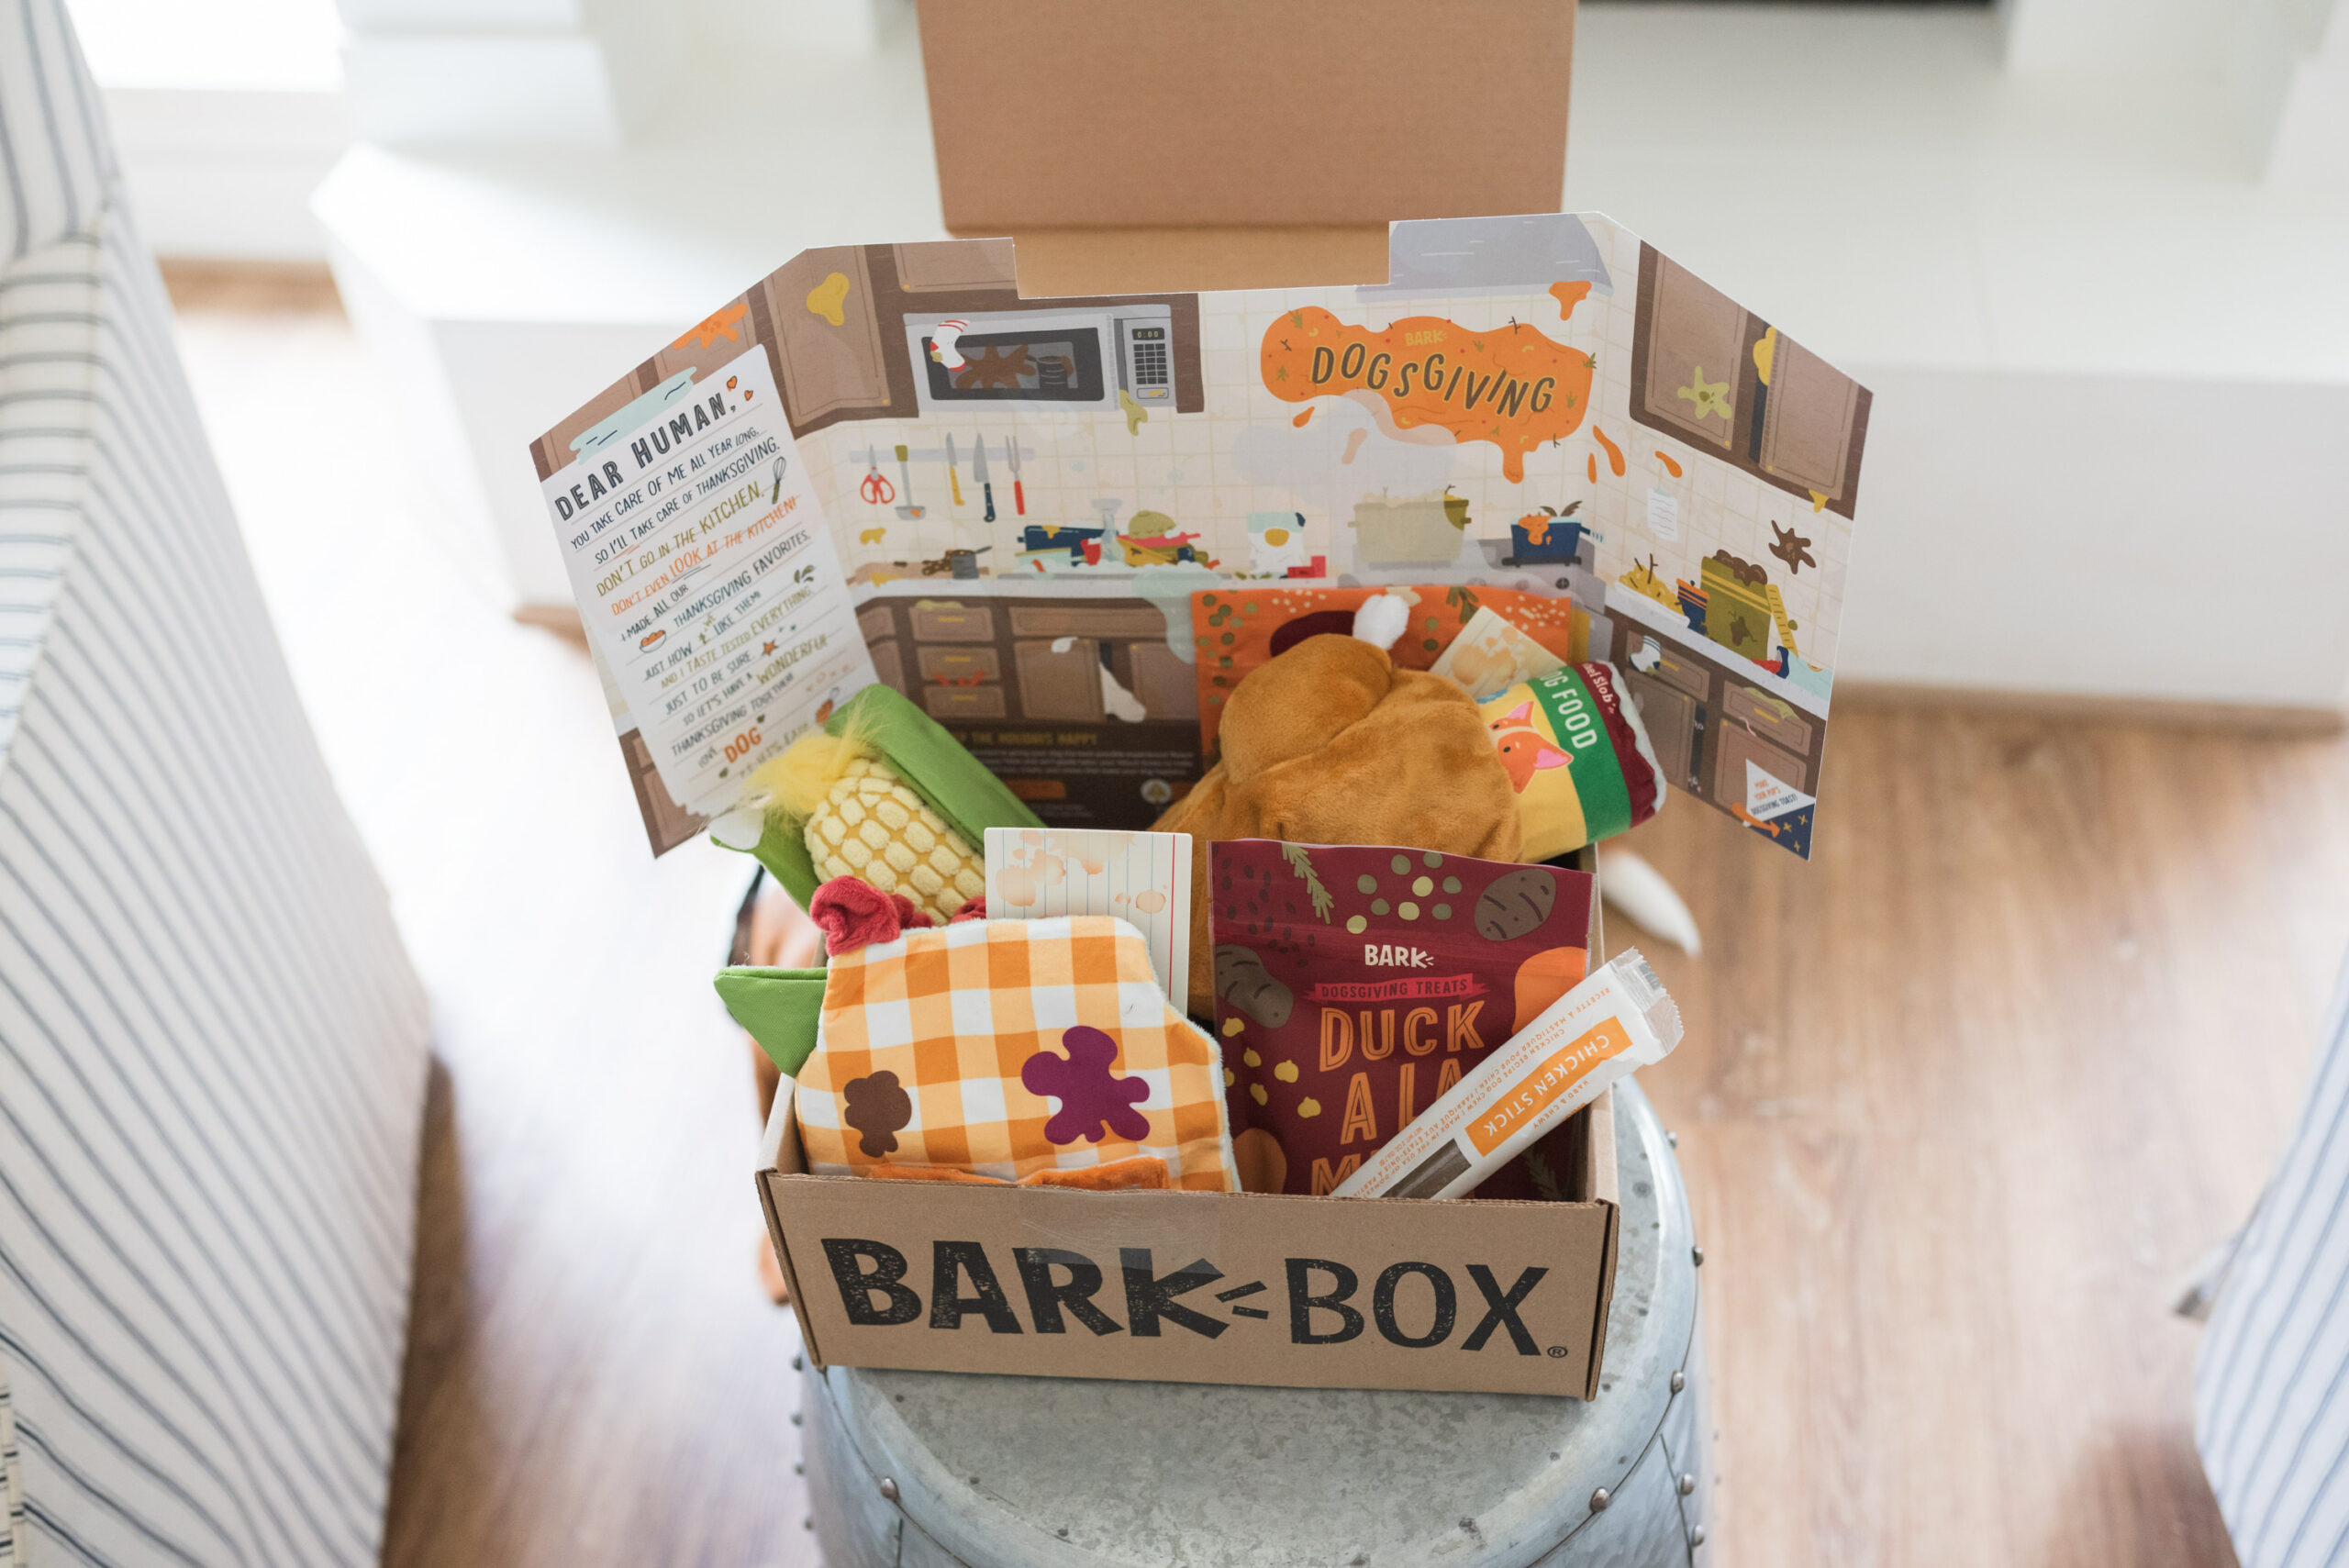 Barkbox Toys by popular Houston lifestyle blog, Fancy Ashley: image of a Barkbox filled with toys and treats.